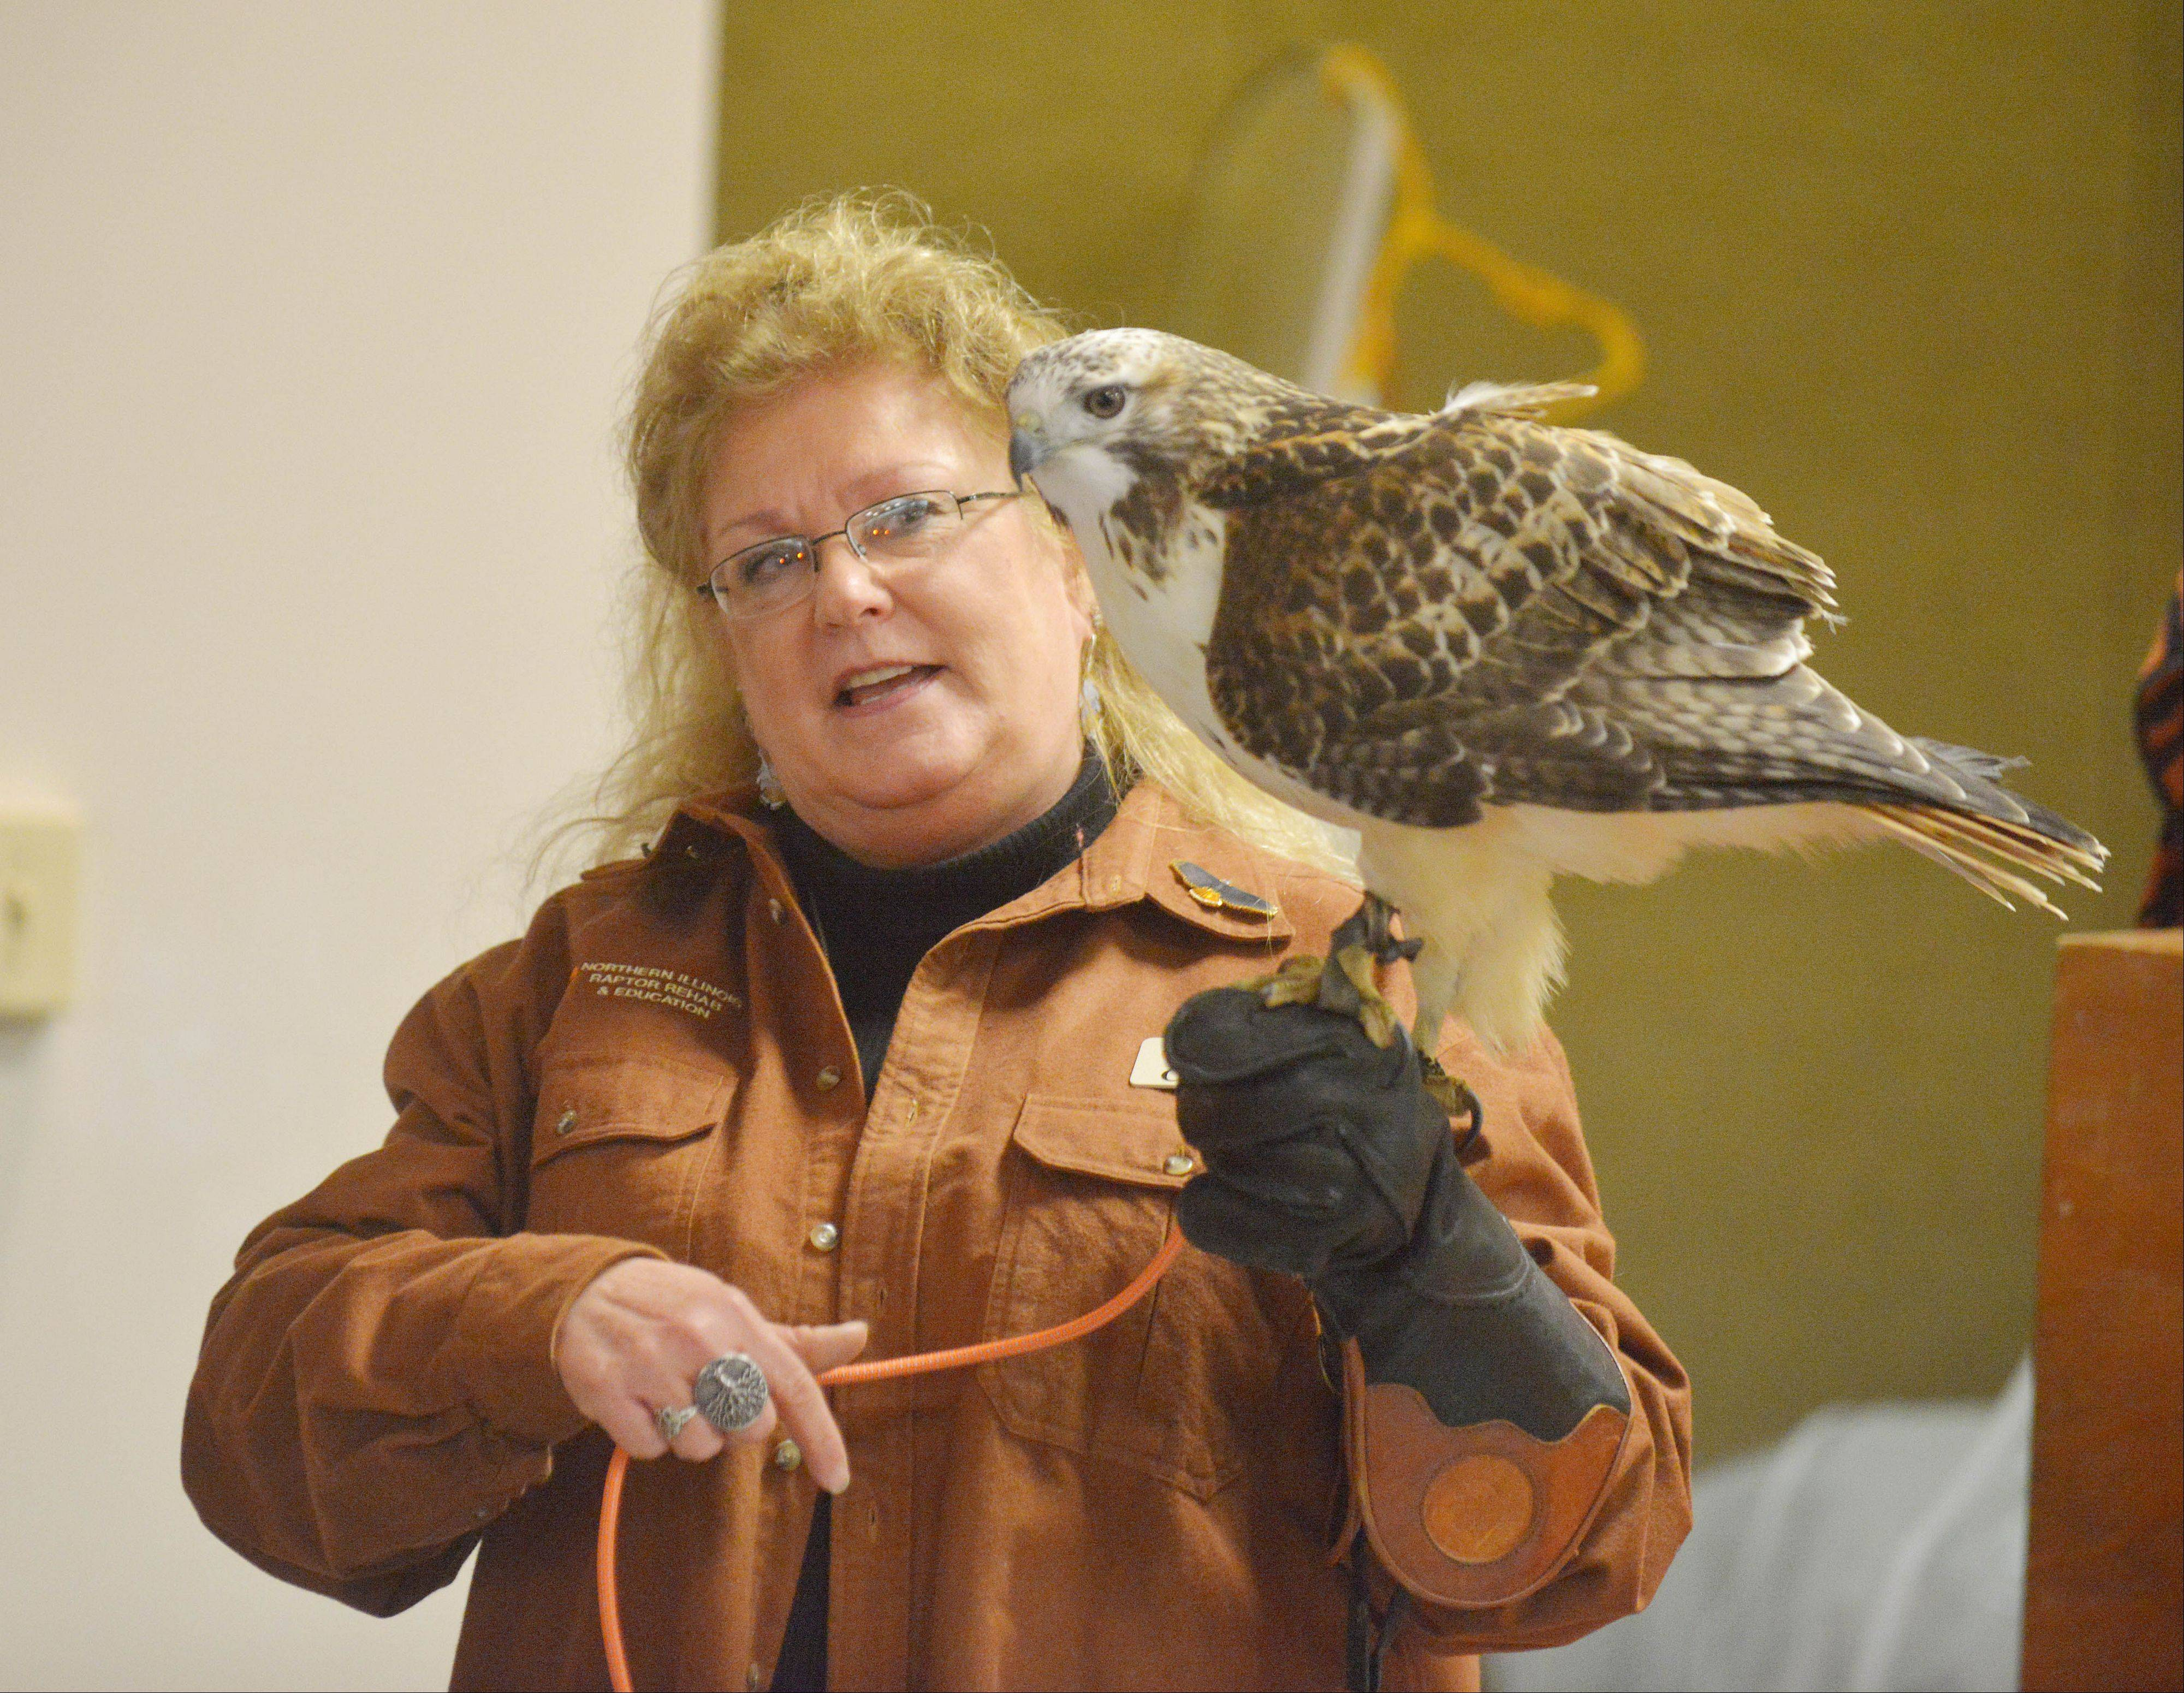 Candy Ridlbauer of Northern Illinois Raptor Rehab and Education offered Birds of Prey, a program on rescue, rehabilitation and release of these birds Saturday at Roselle Public Library. She is holding a red-tailed hawk.